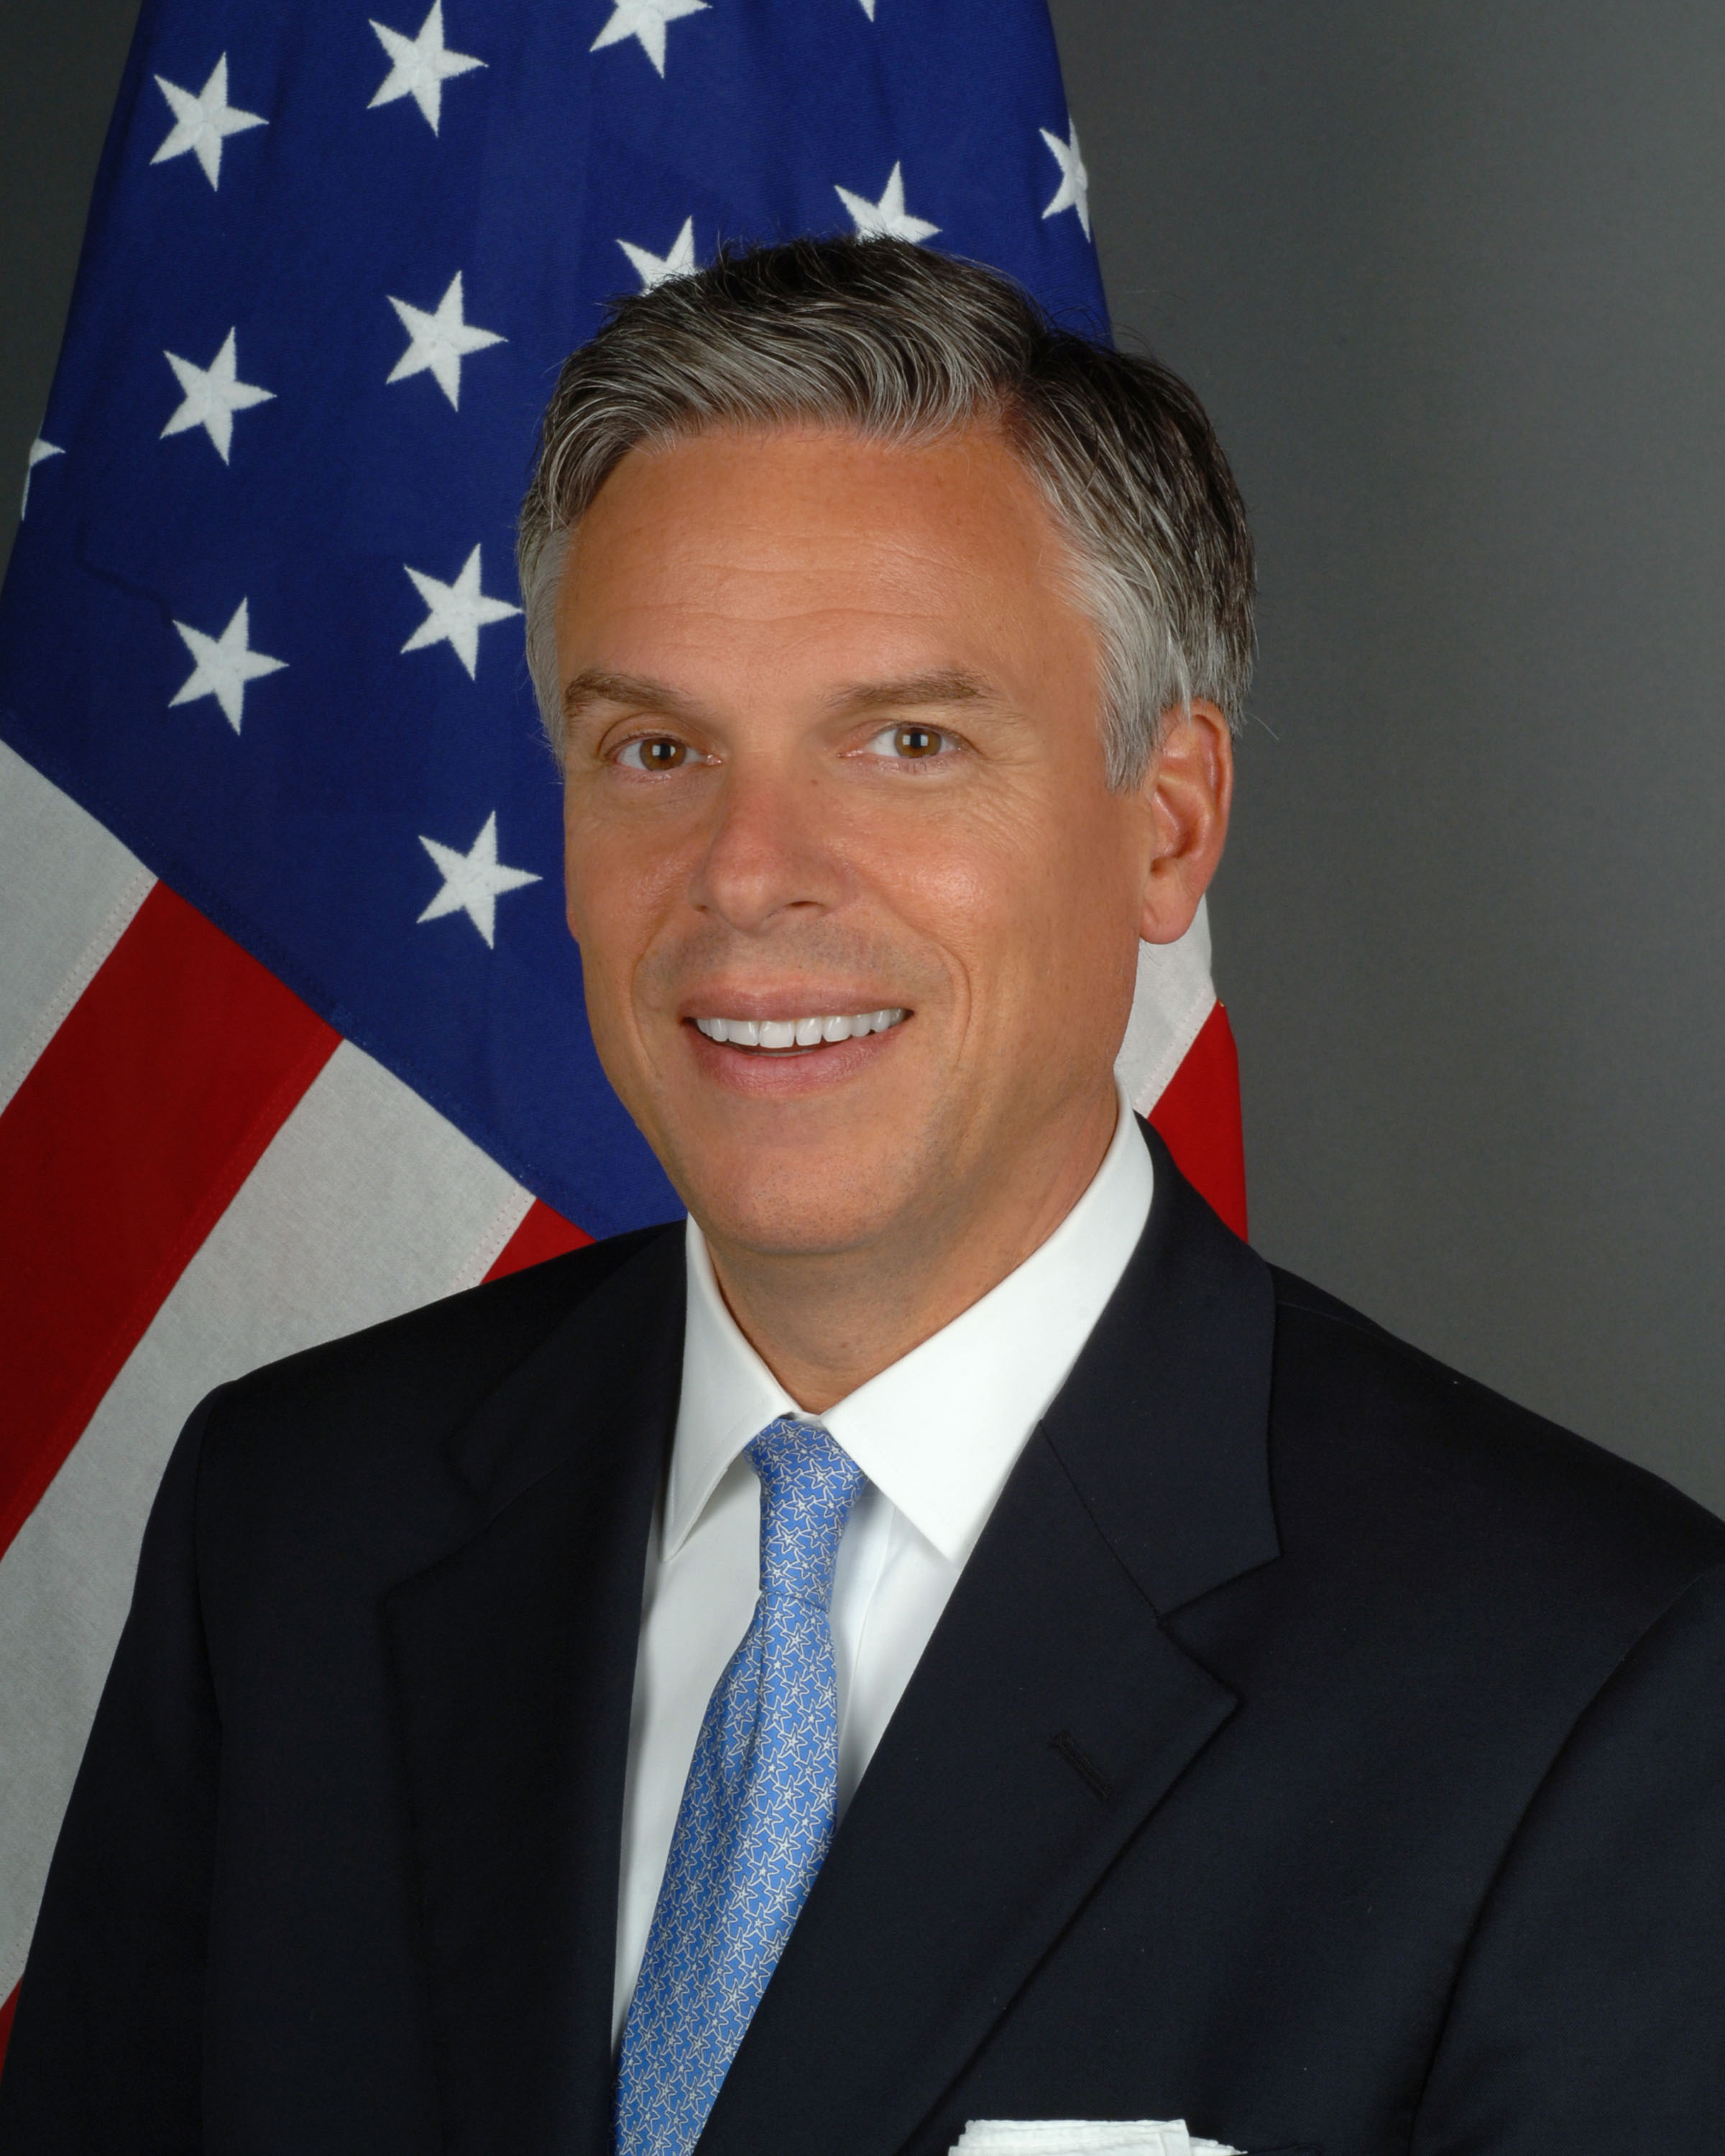 Jon M Huntsman Jr